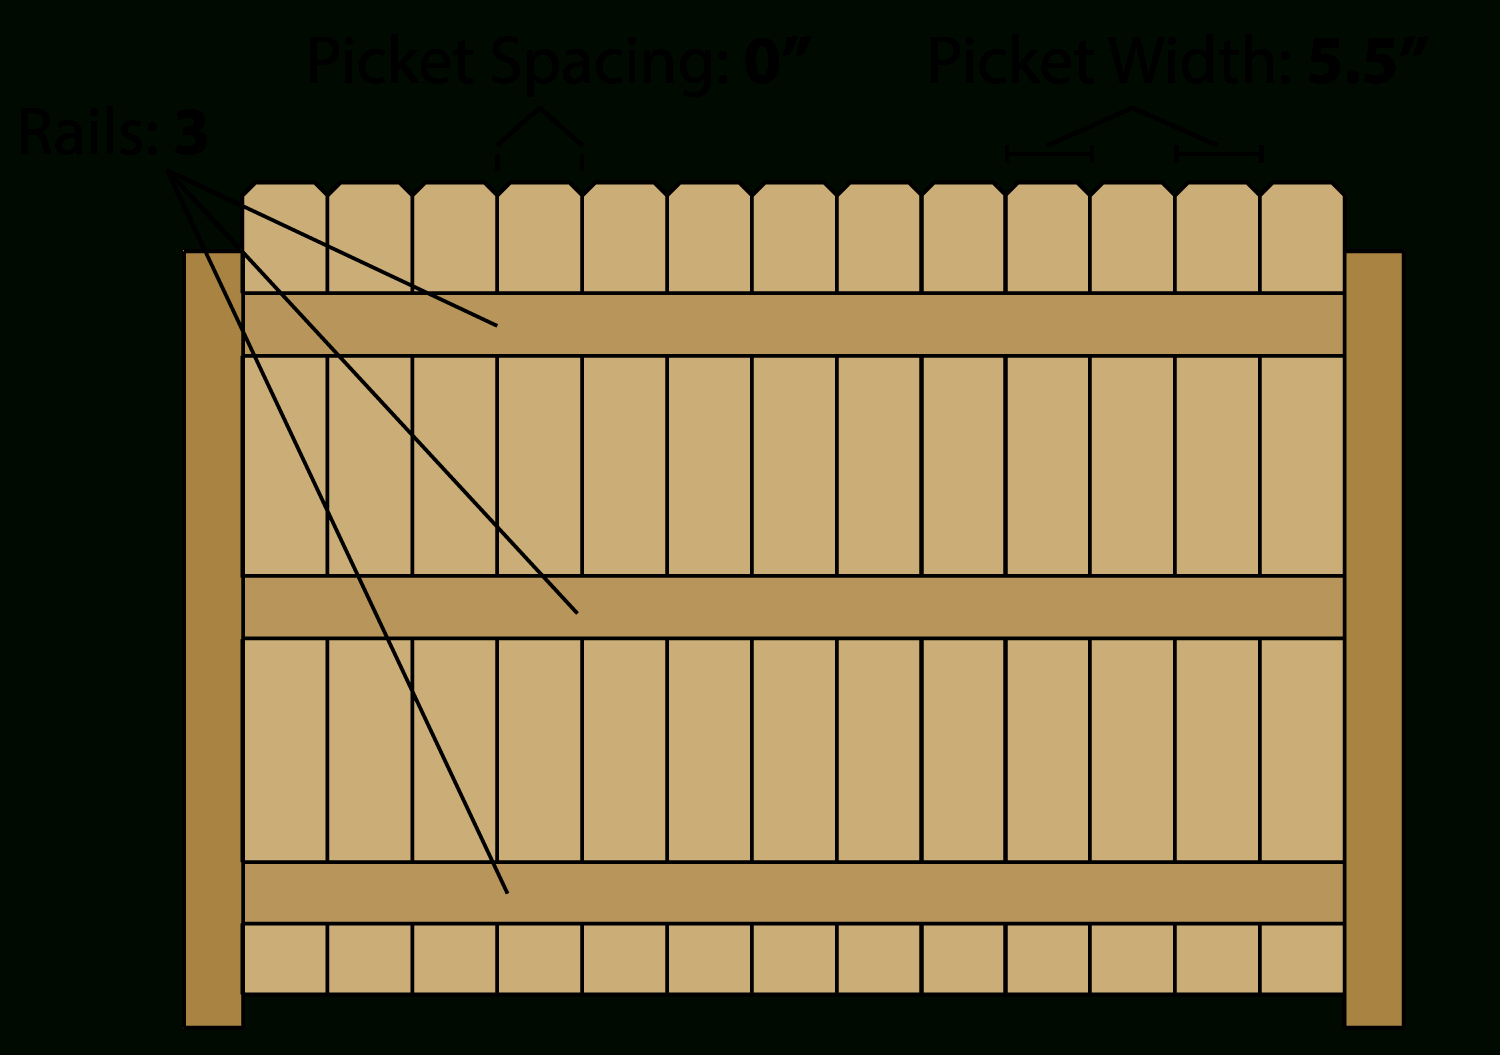 Wood Fence Estimate Spreadsheet With Regard To Fence Calculator  Estimate Wood Fencing Materials And Post Centers